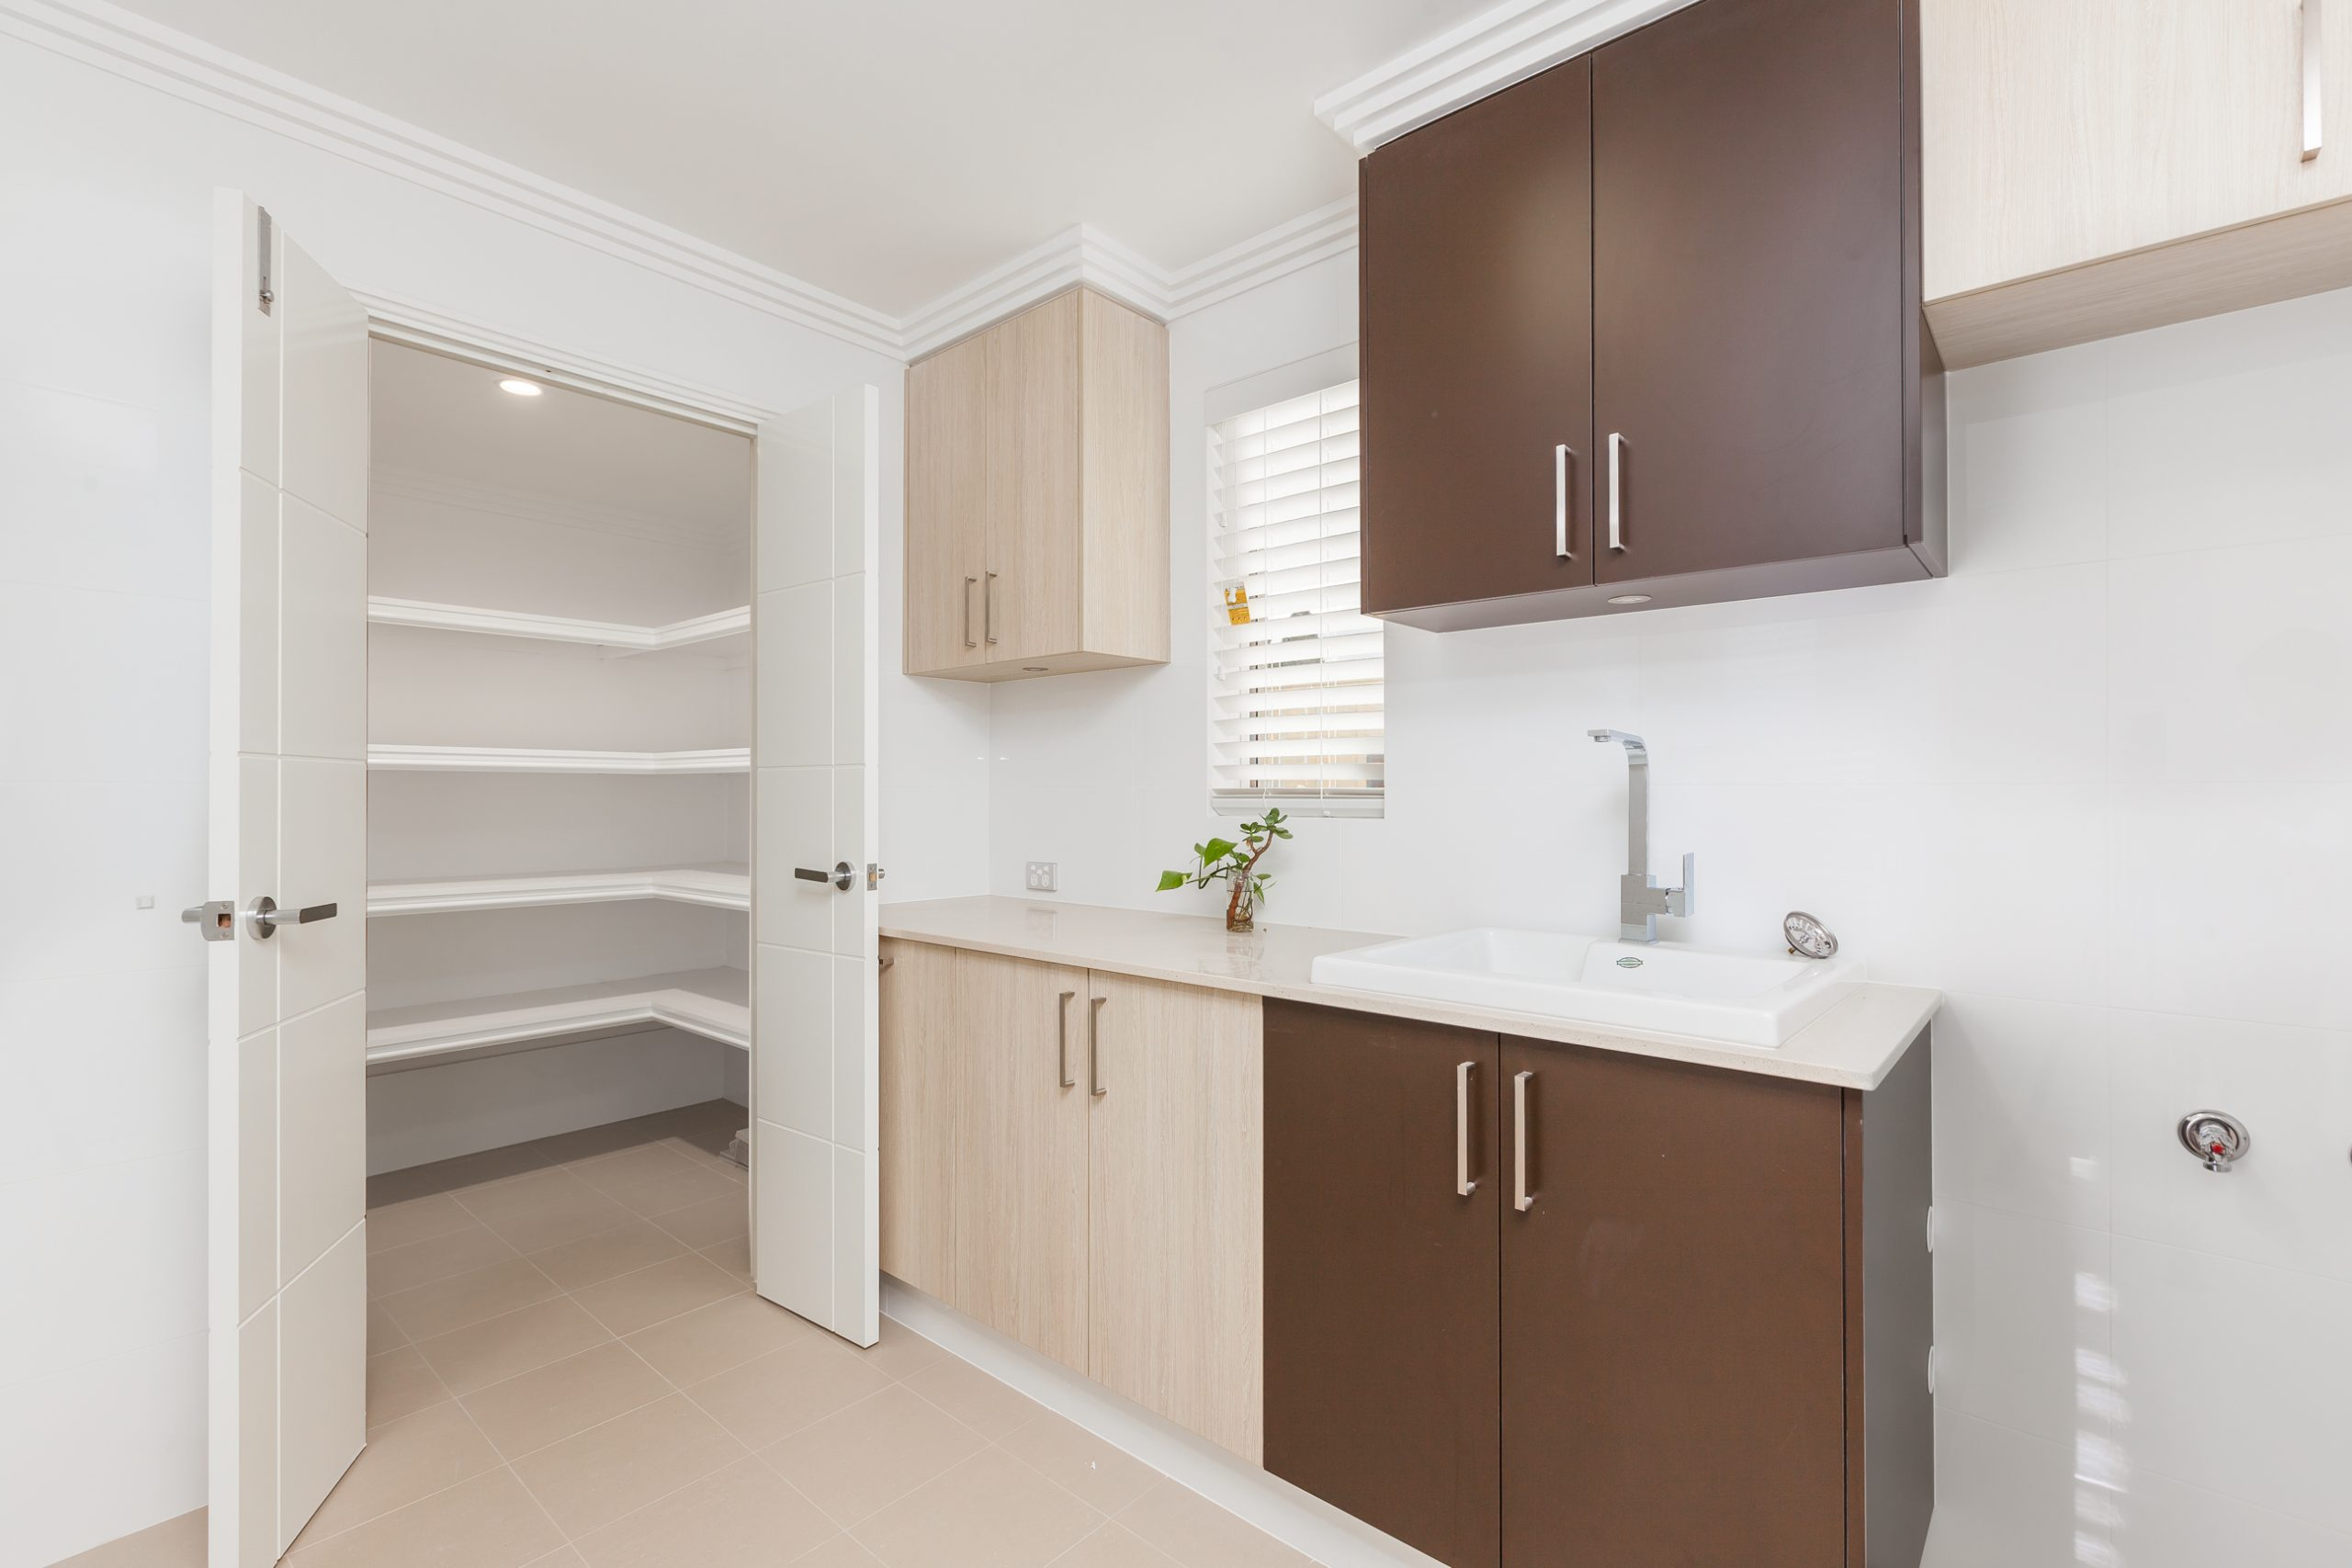 Laundry area with a counter and sink with built in overhead storage, counter cabinets and a linen closet